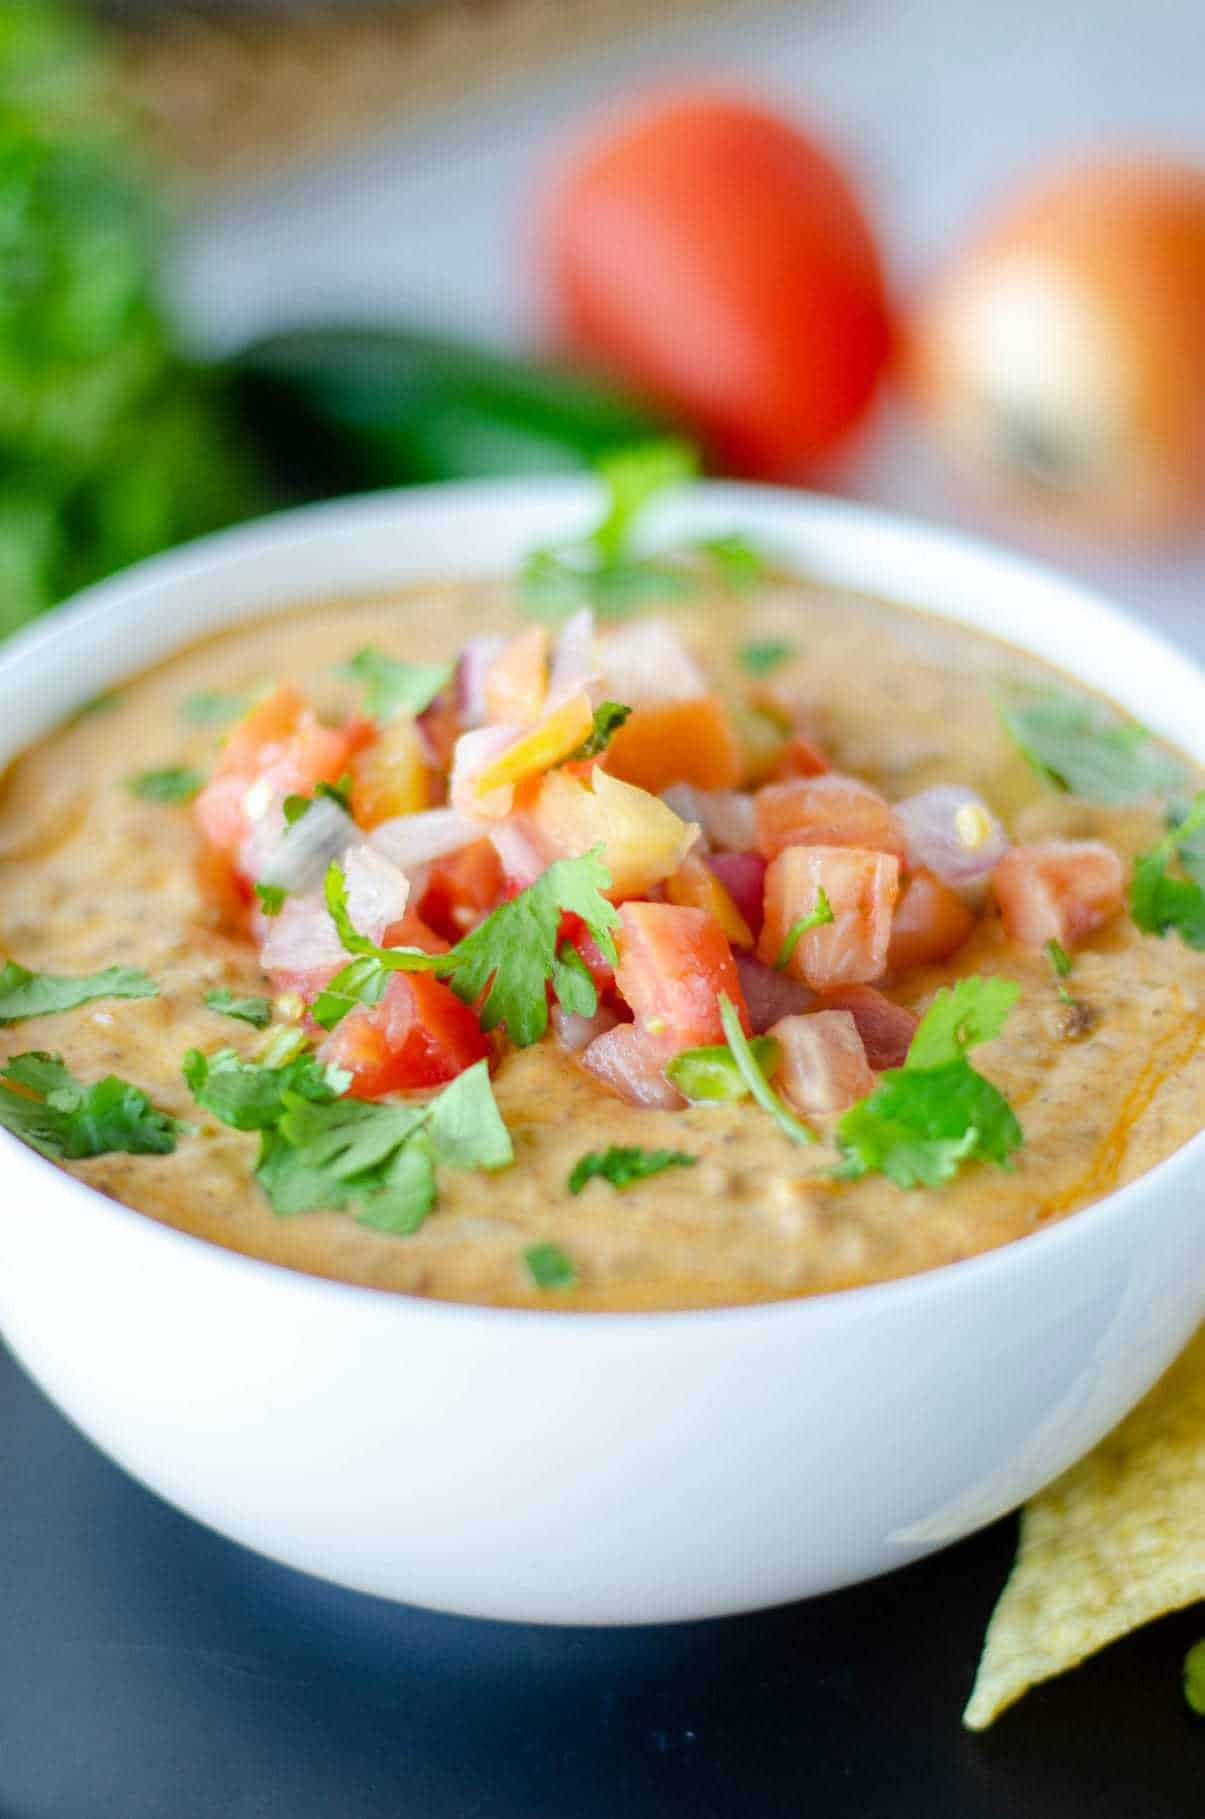 Chili con queso in a white bowl with diced tomatoes, onions and cilantro on top.